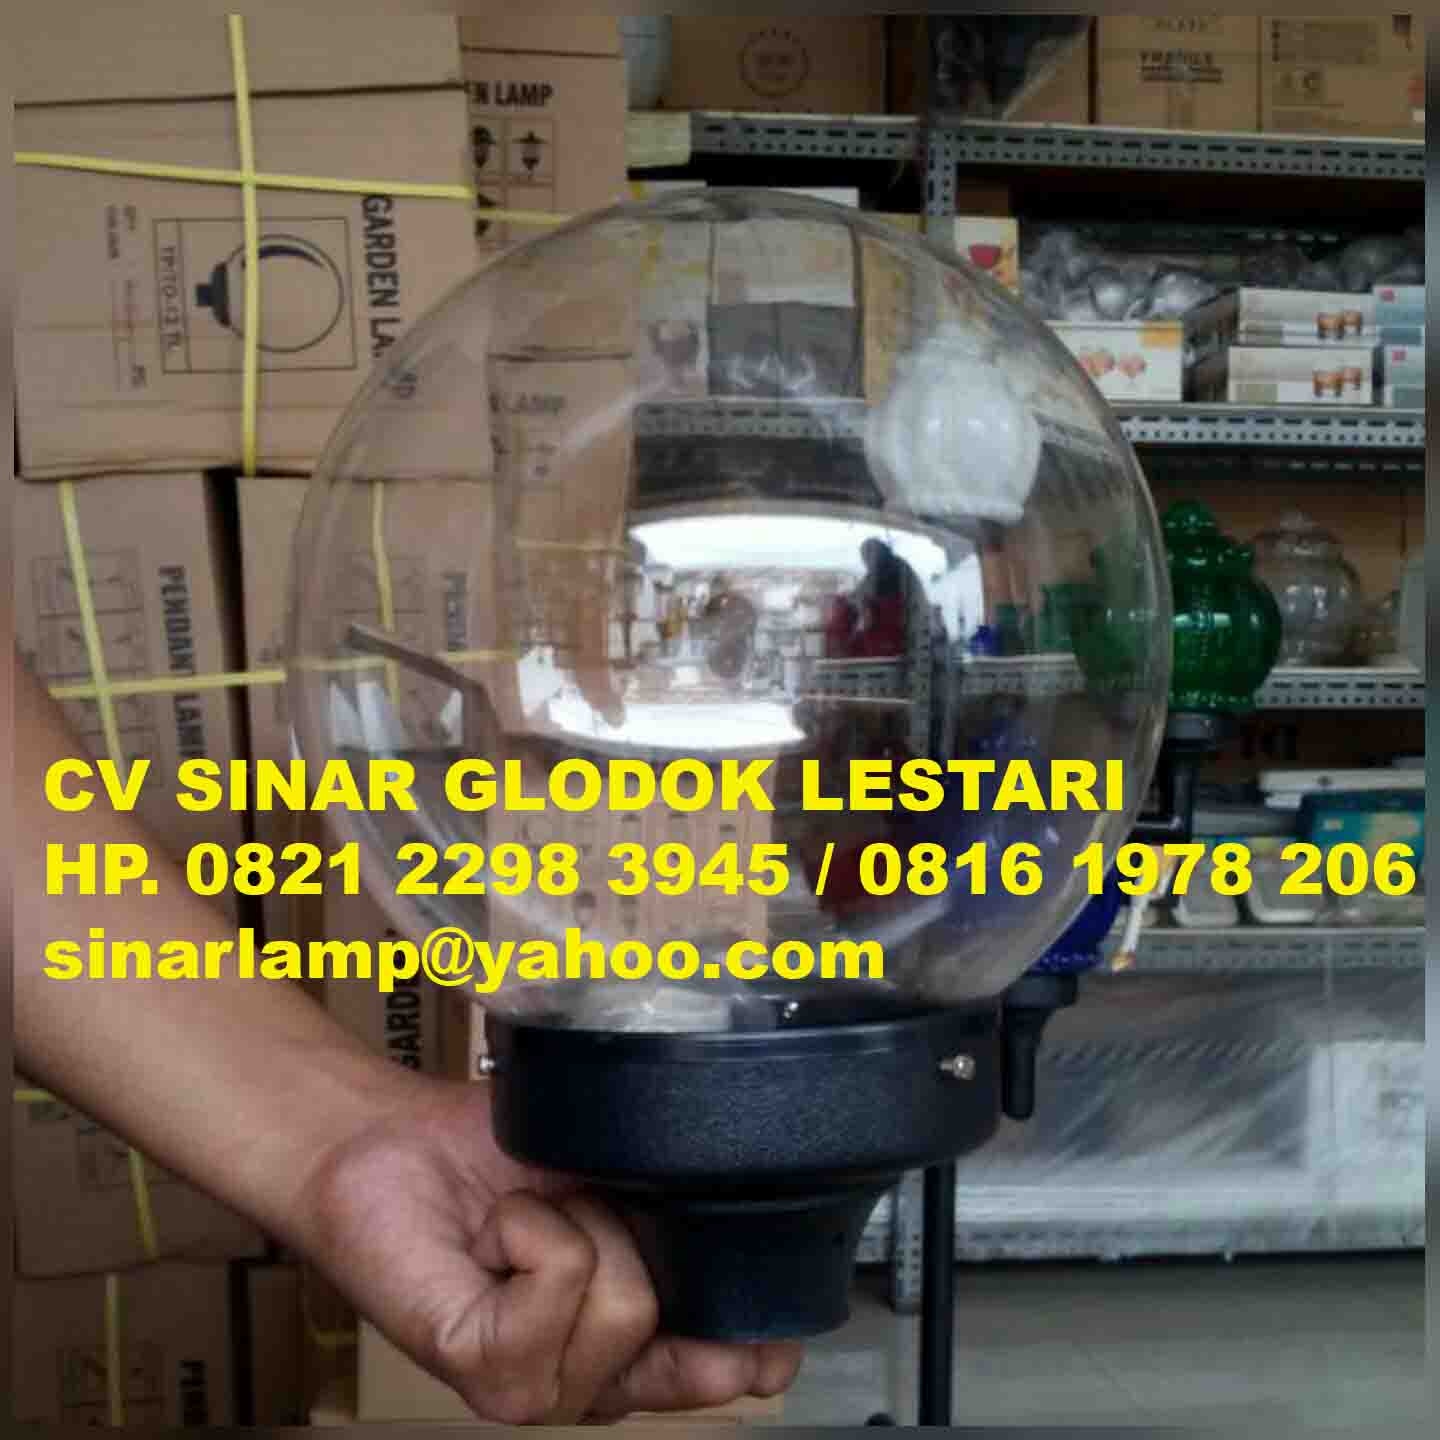 Lampu Taman Dan Lampu Pilar 404 The Requested Product Does Not Exist Results From 15